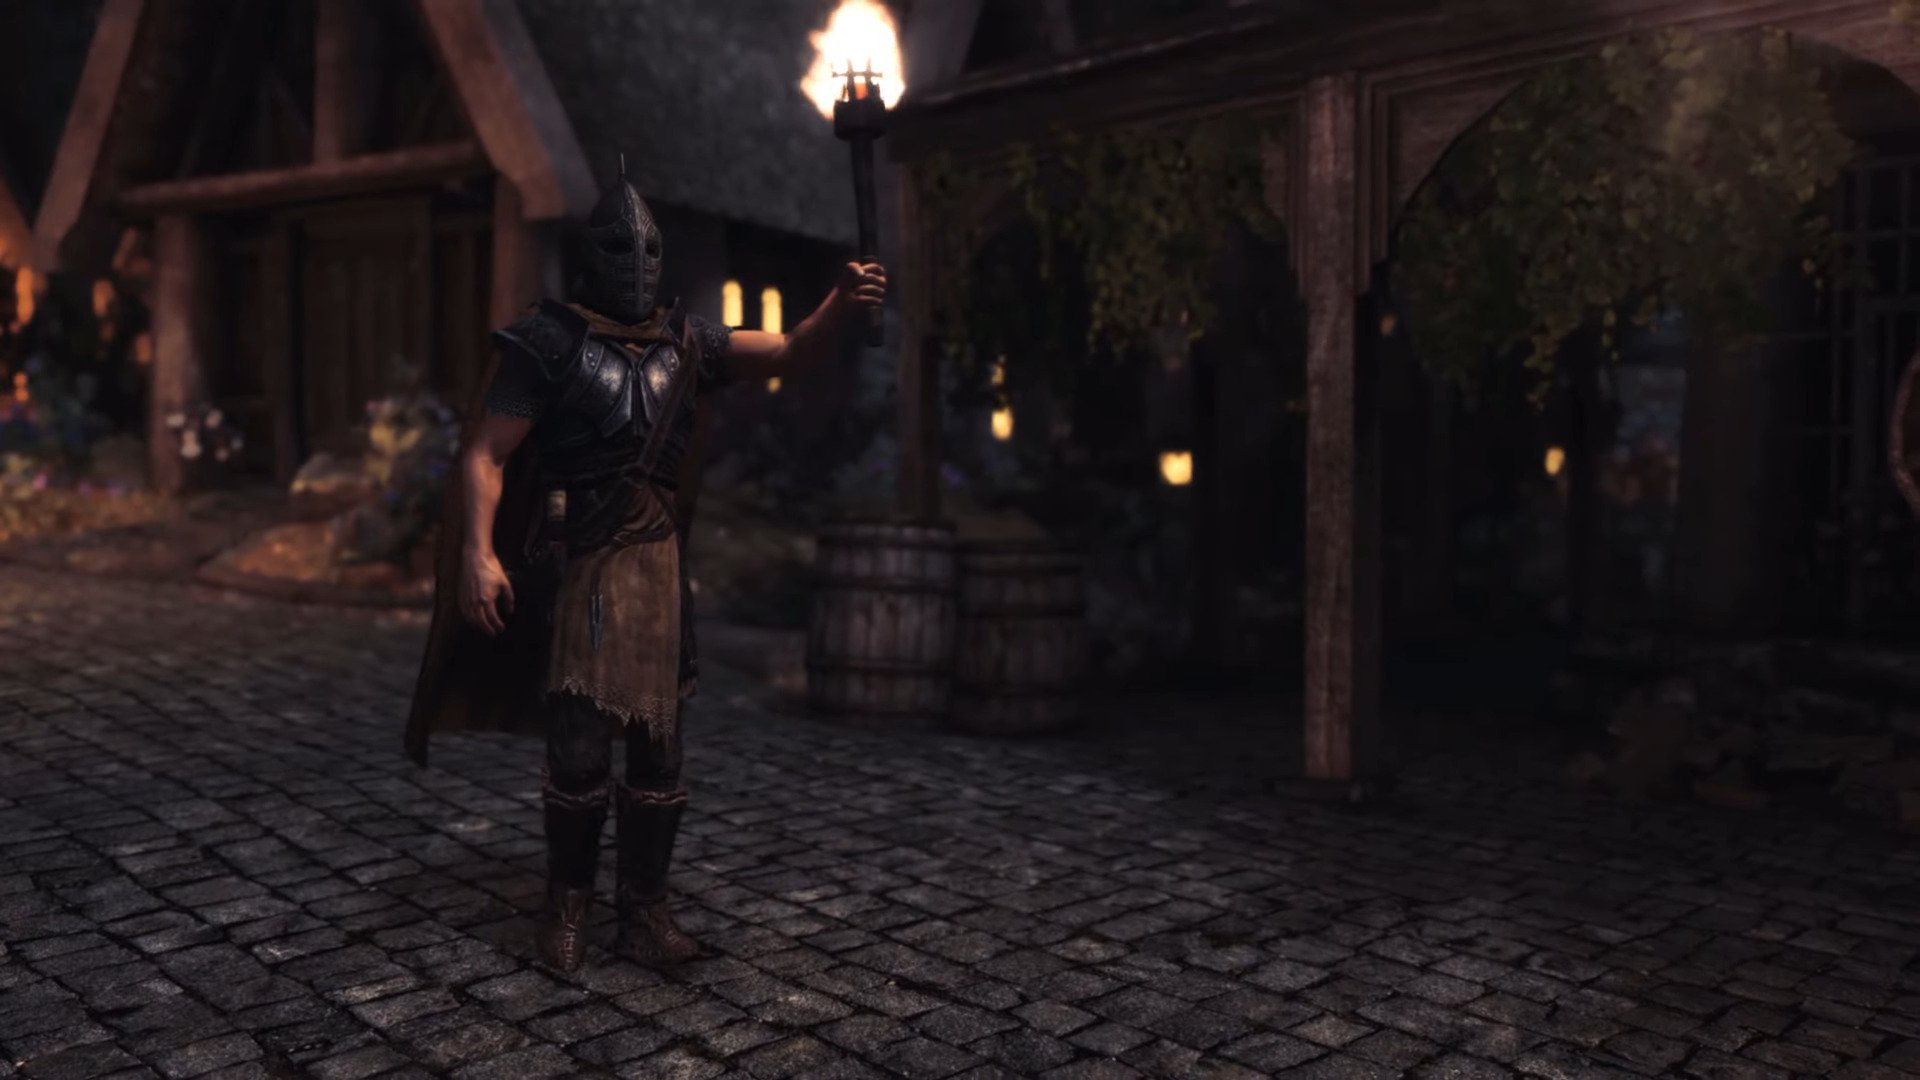 Elder Scrolls 5 Skyrim Special Edition Weekly Mod Showcase 8/1 Features New Animations And A Revamped Whiterun